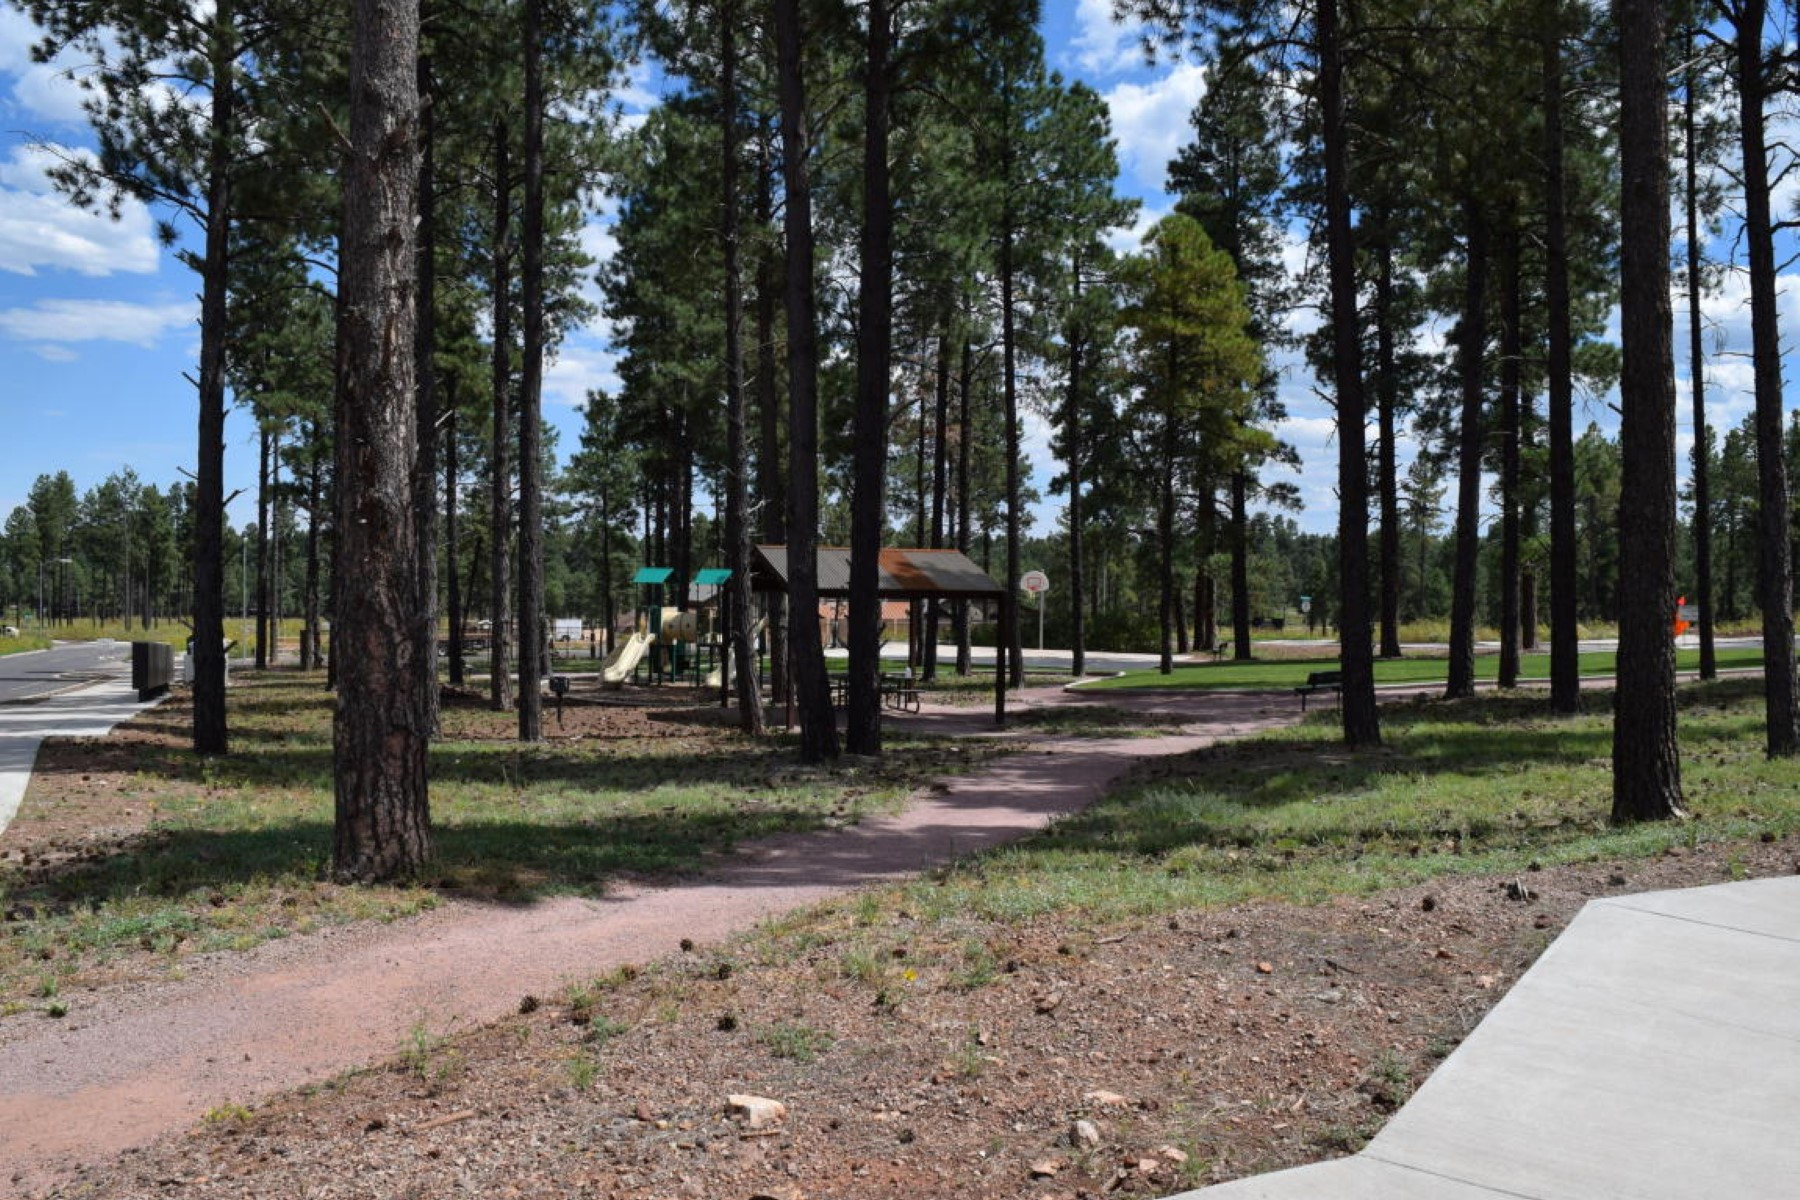 Land for Sale at Beautiful Presidio back load lot from an alley and ready to build on 2876 W Patio Del Presidio Flagstaff, Arizona, 86001 United States